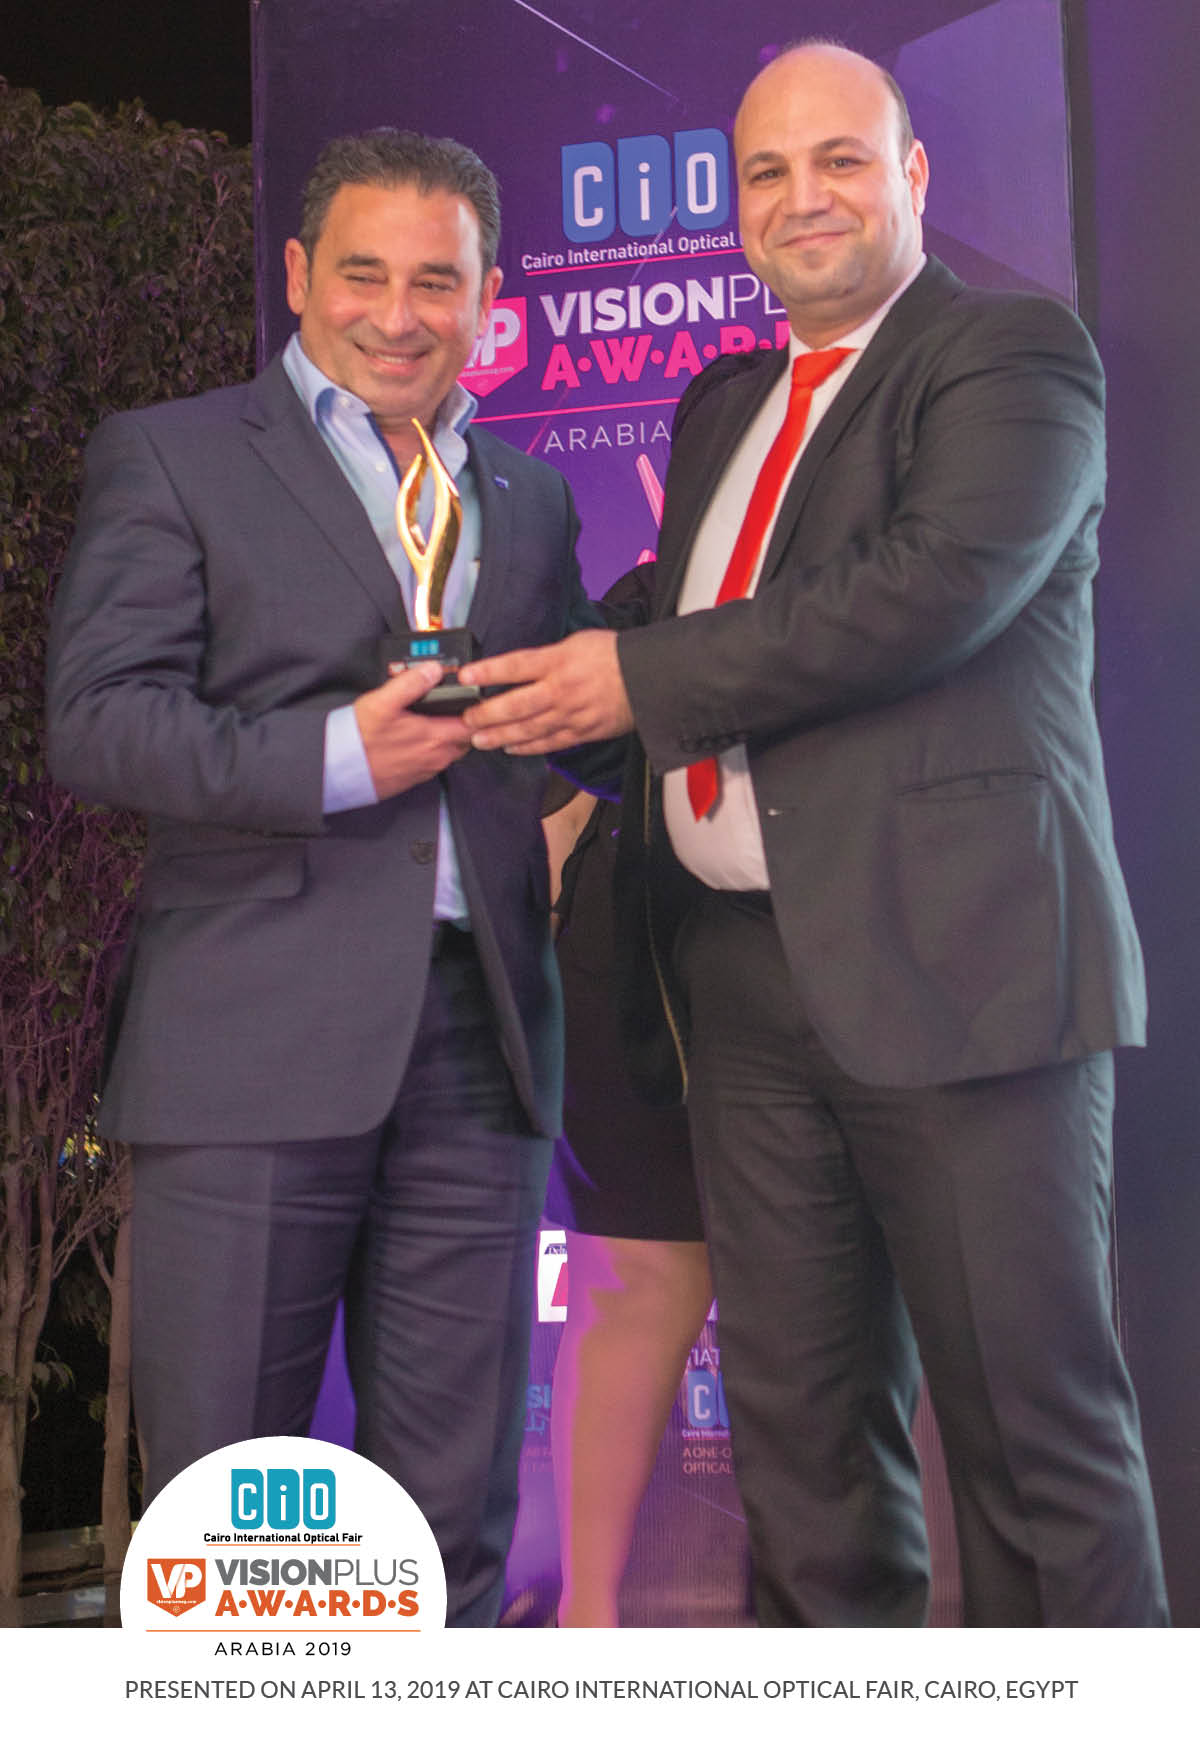 CiO VP Awards 2019: Monogram Wins The Special Jury Award!